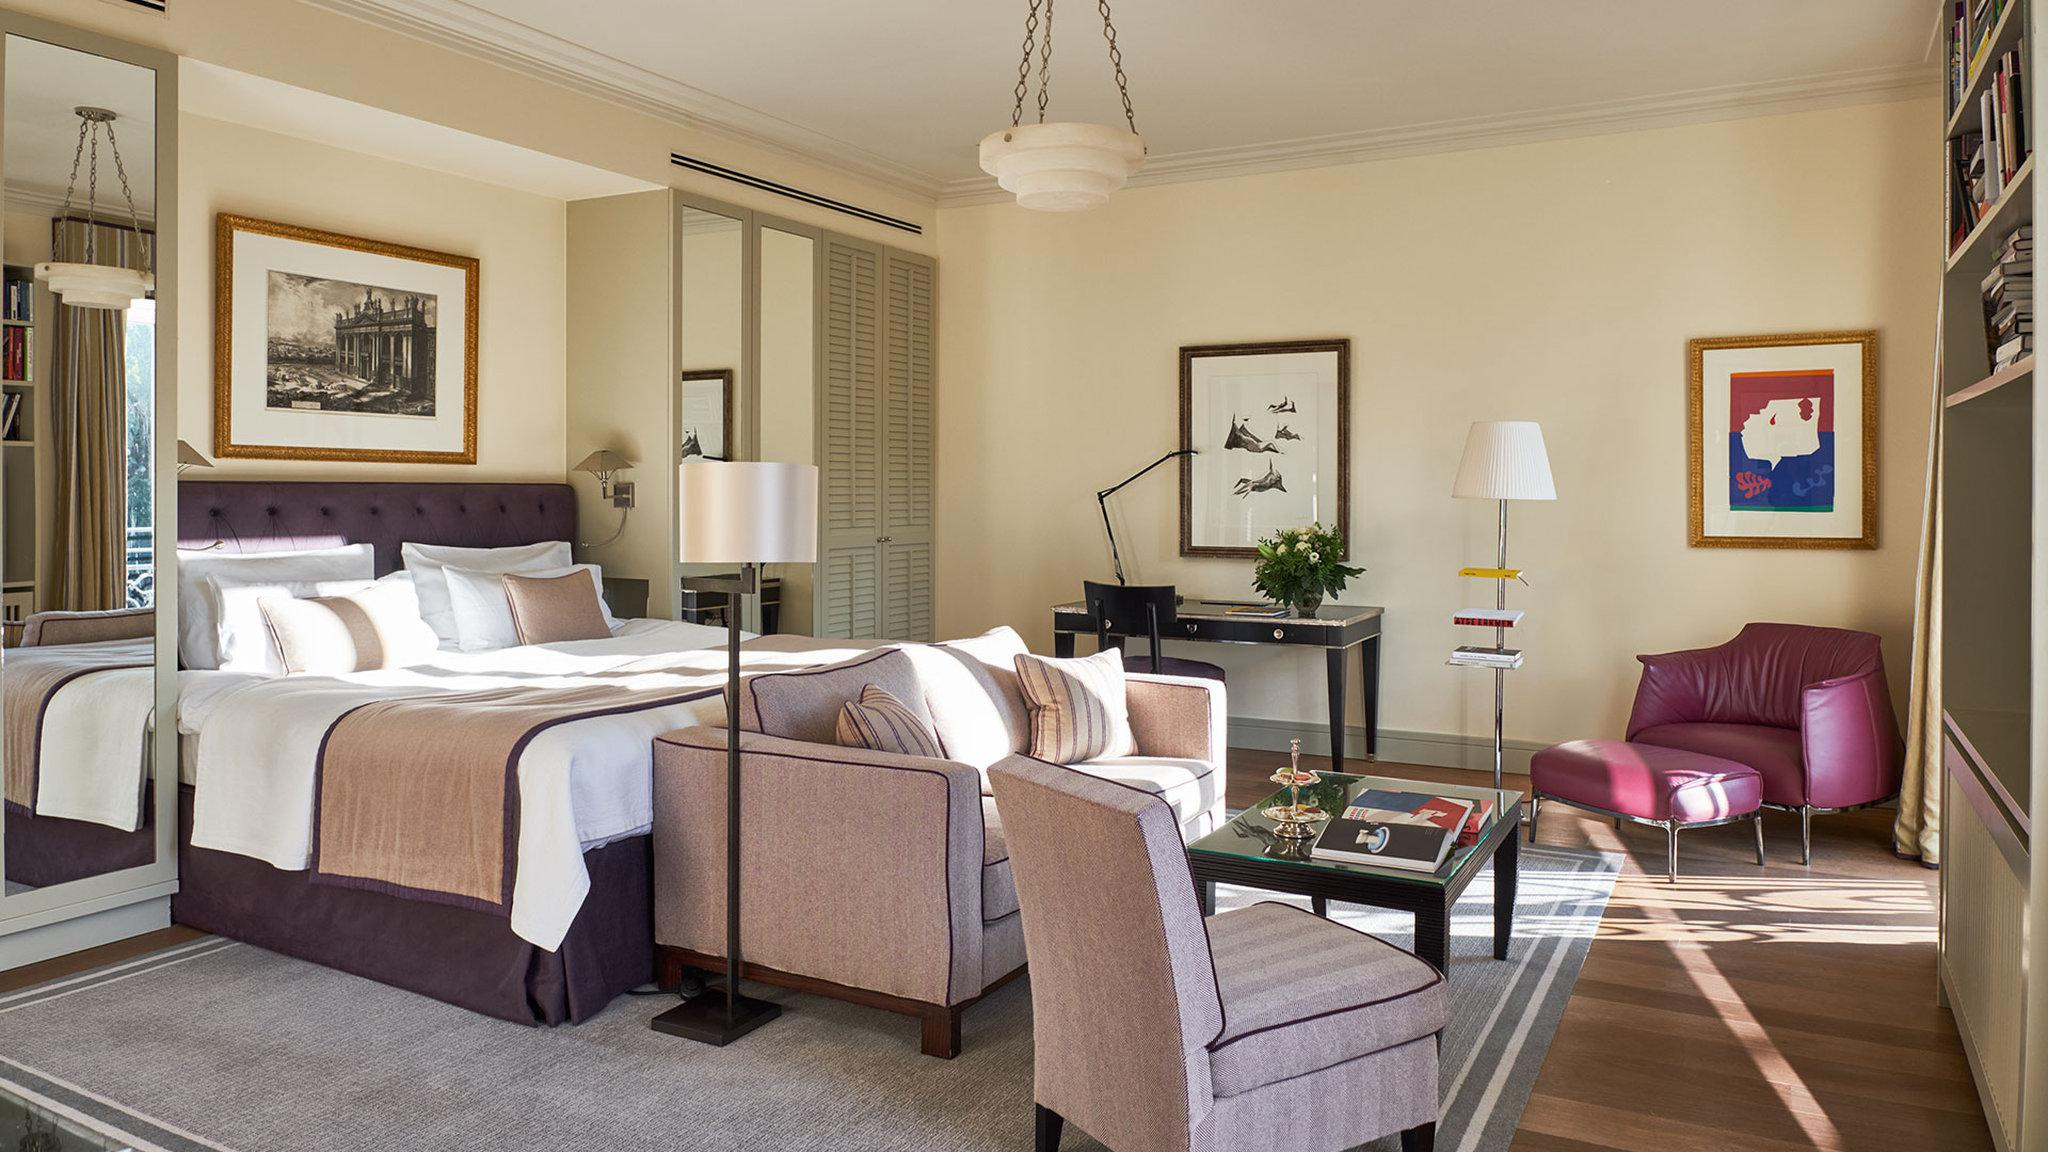 Brenners Park-Hotel & Spa - an Oetker Collection Hotel